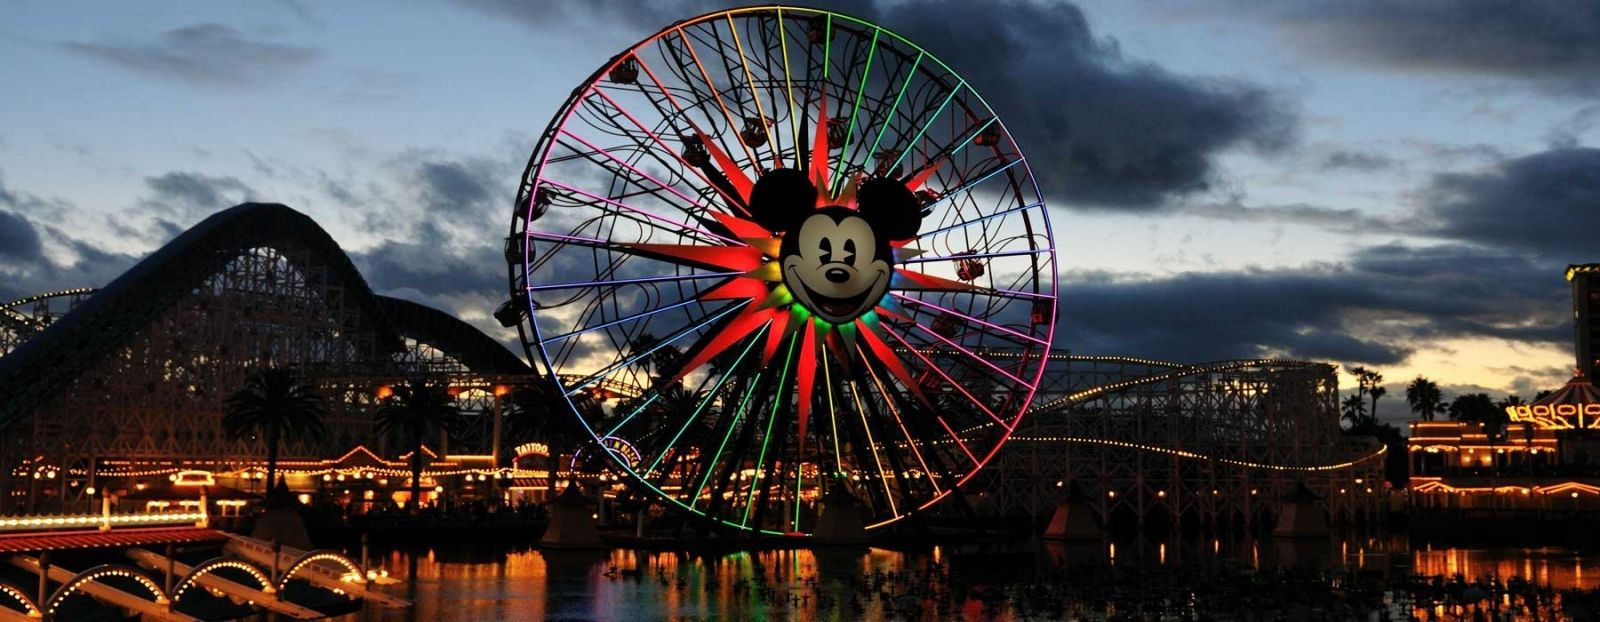 Properties Near Disneyland